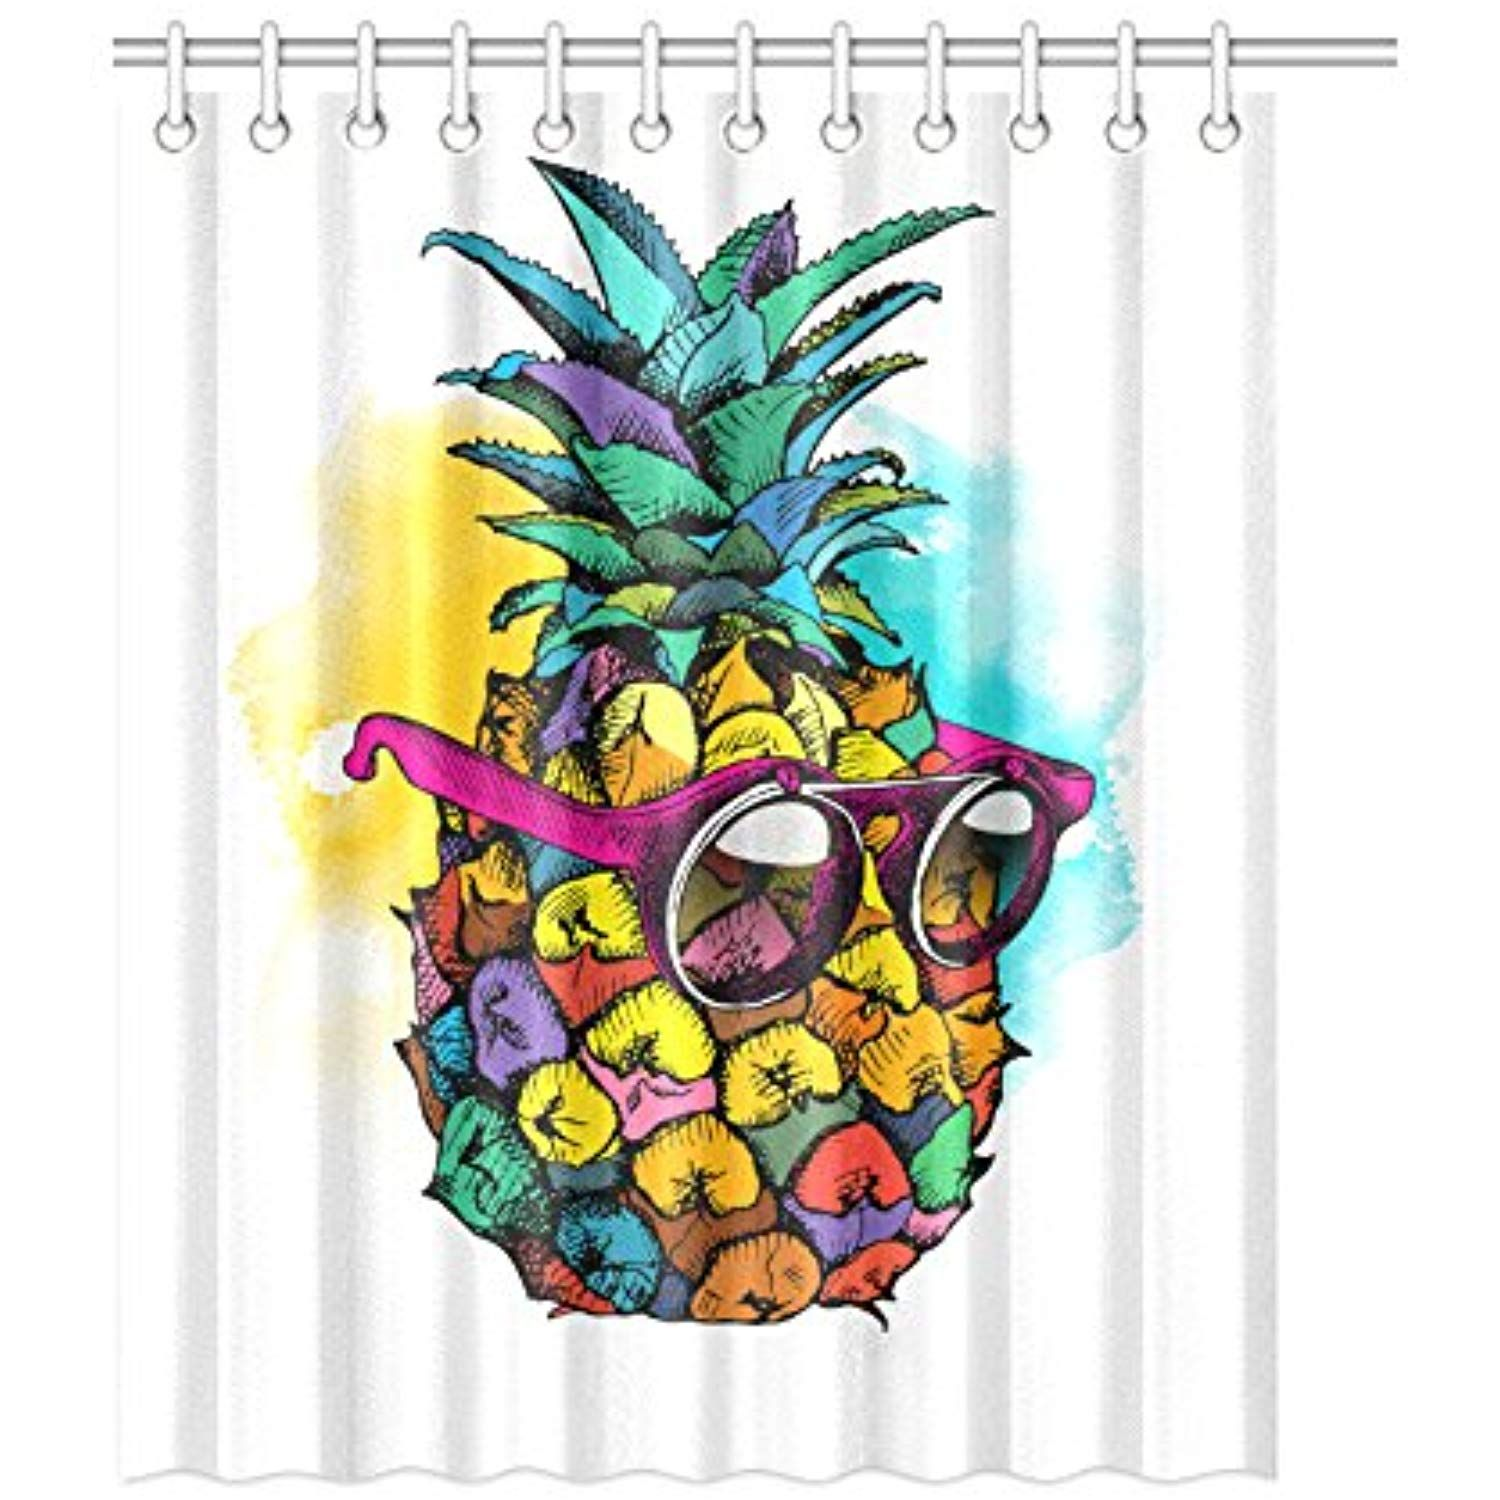 Cartoon Cool Pineapple With Sunglasses Funny Shower Curtain Waterproof Polyester Peva For Bathroom Stylish Decor 60 72 Click On The